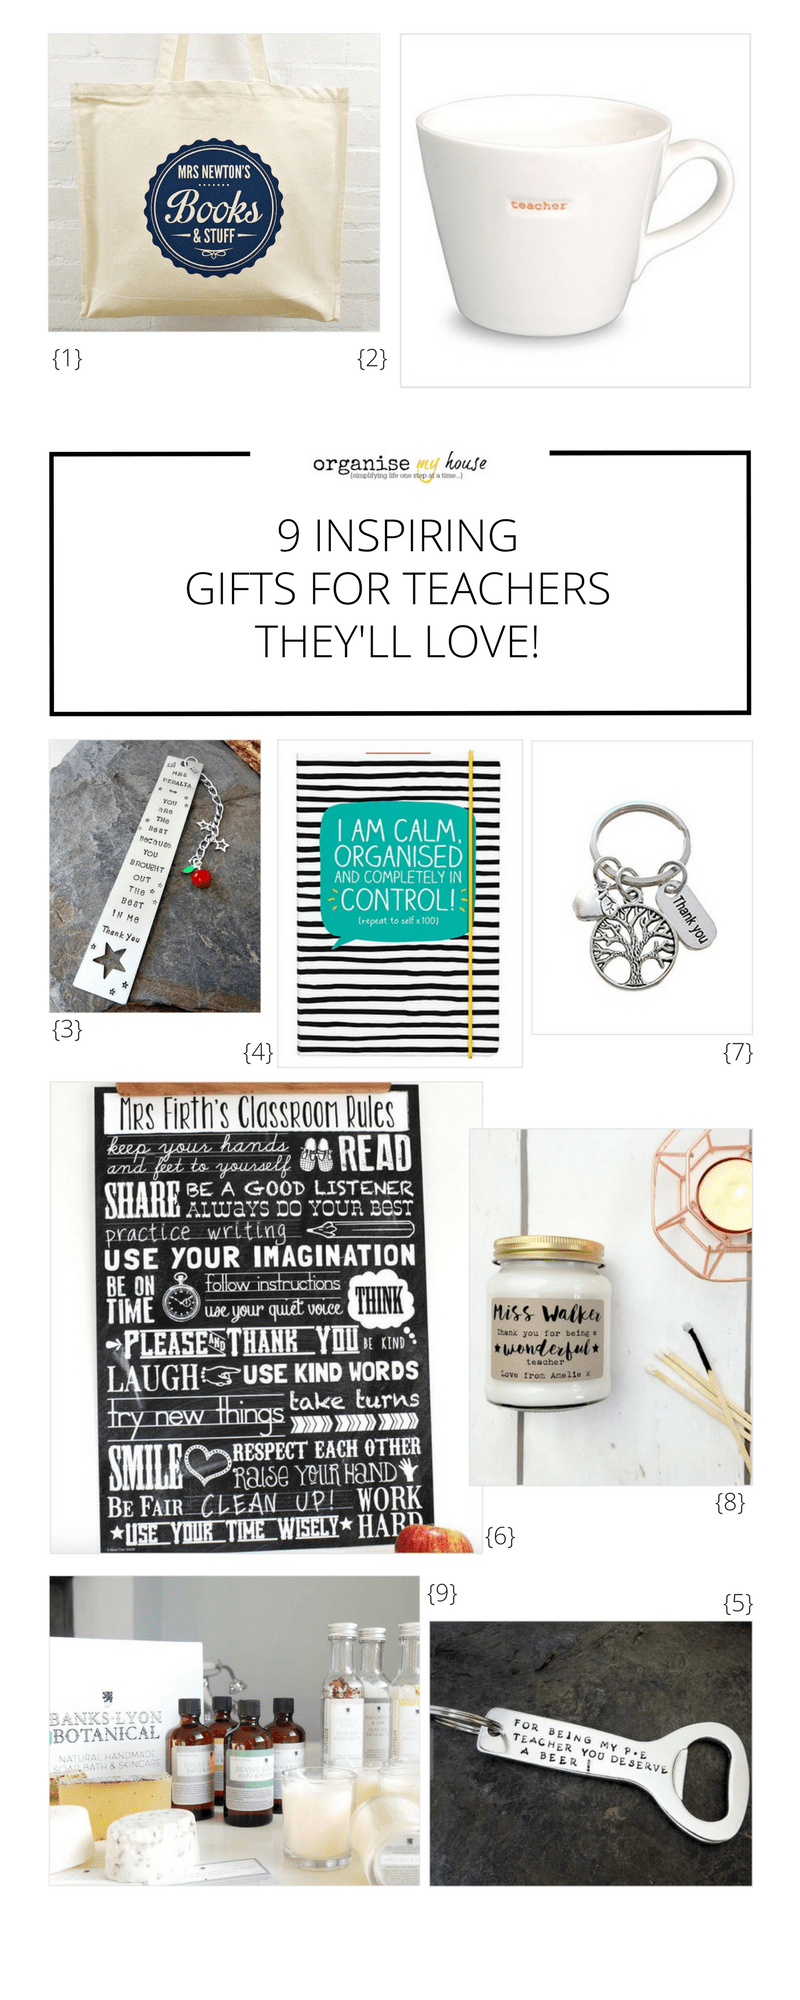 Amazing collection of gifts for teachers that your child could give this end of school year, Find inspiration for teachers presents with this gift guide for teachers. Teacher gifts / Teacher presents / End of school gift ideas that they will love!